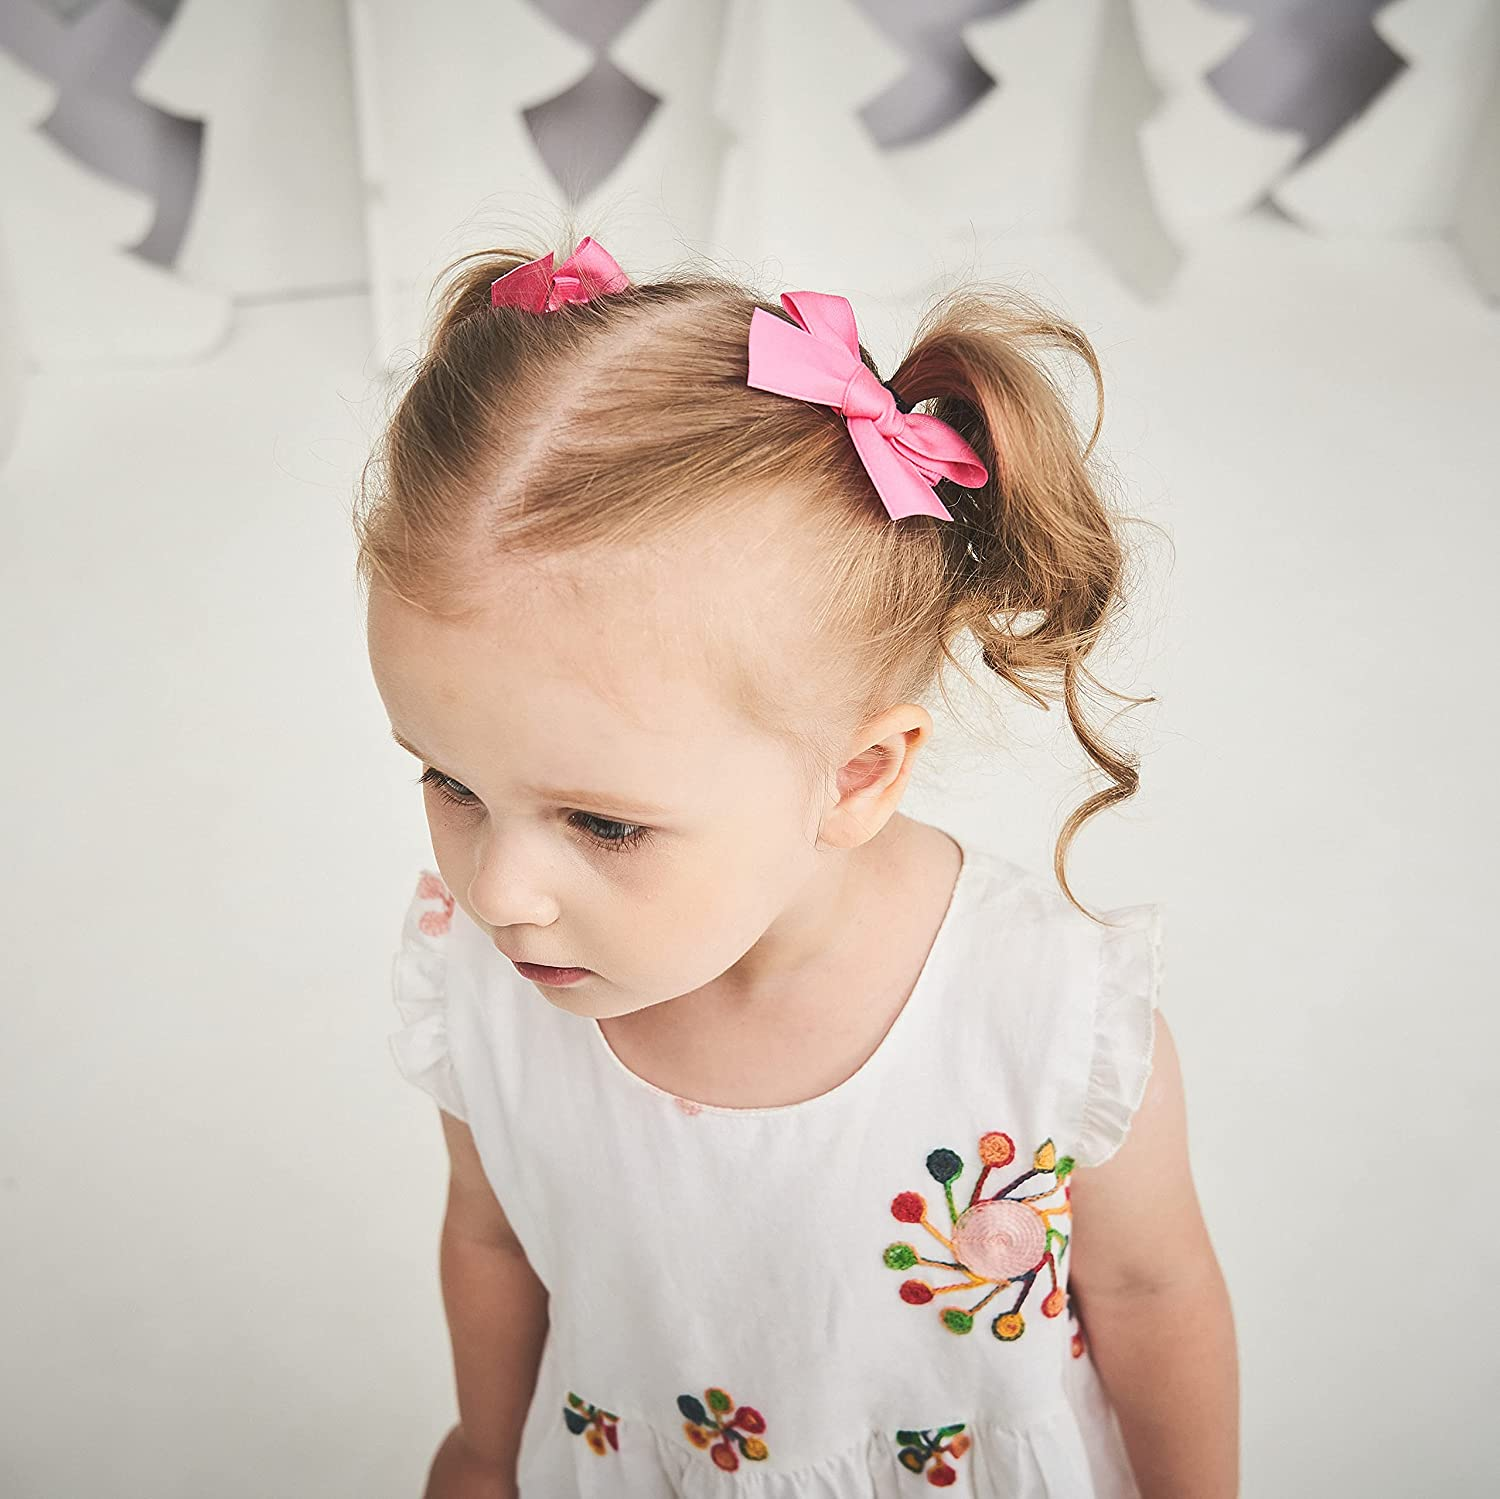 40pcs 3inches Baby Girls Hair Bows Clips Full Lined Hair Barrettes Accessories for Toddlers Kids School Girls in Pairs